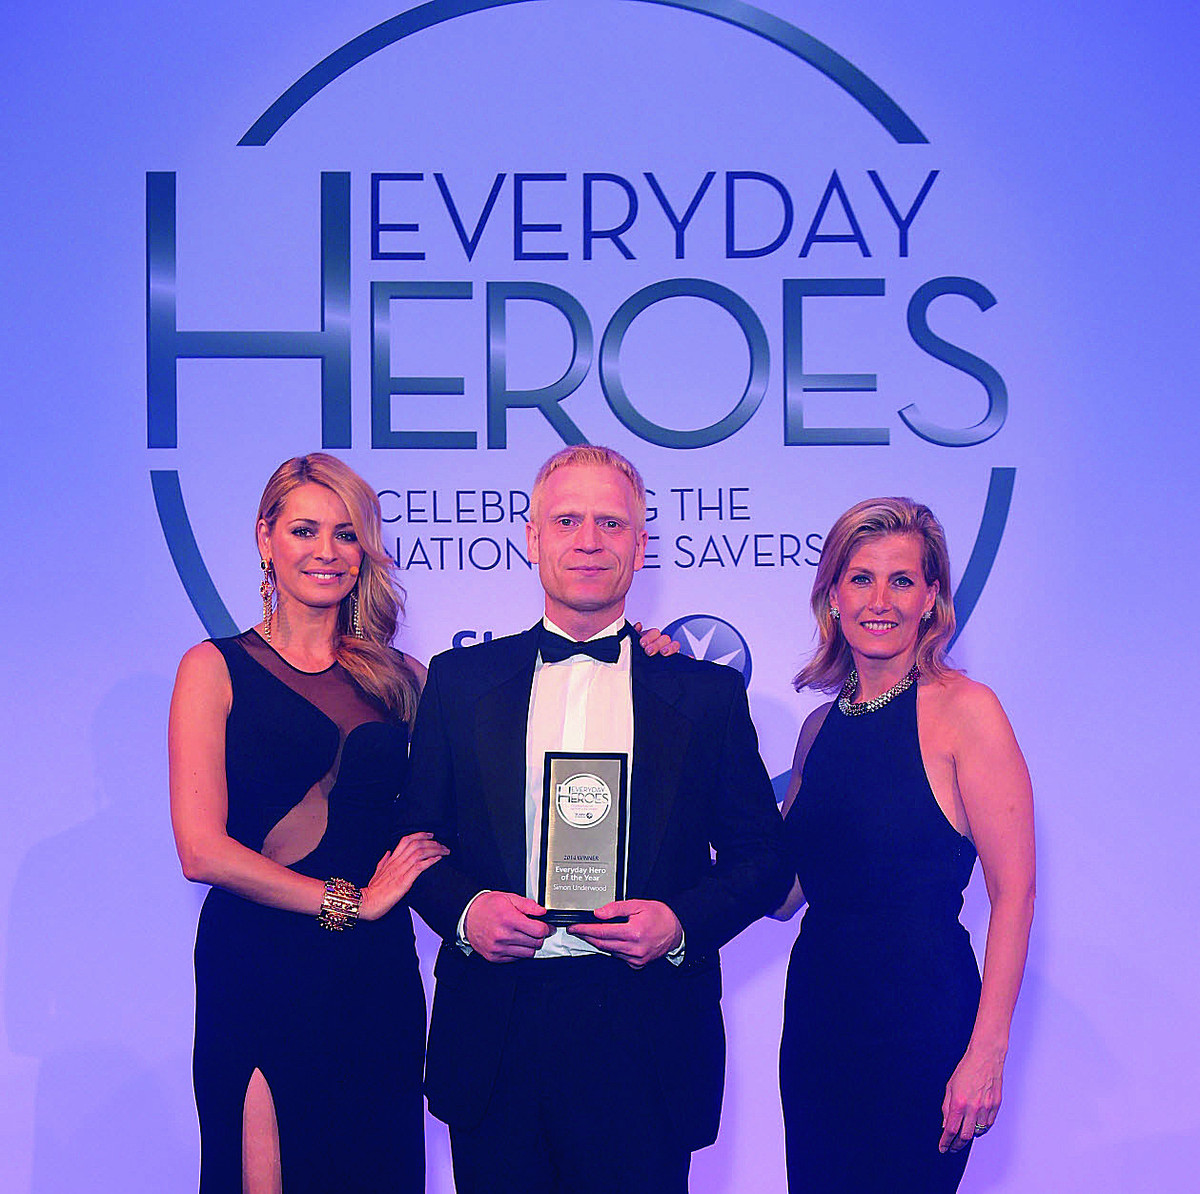 Everyday Hero of the Year winner Simon Underwood with the Countess of Wessex and TV star Tess Daly